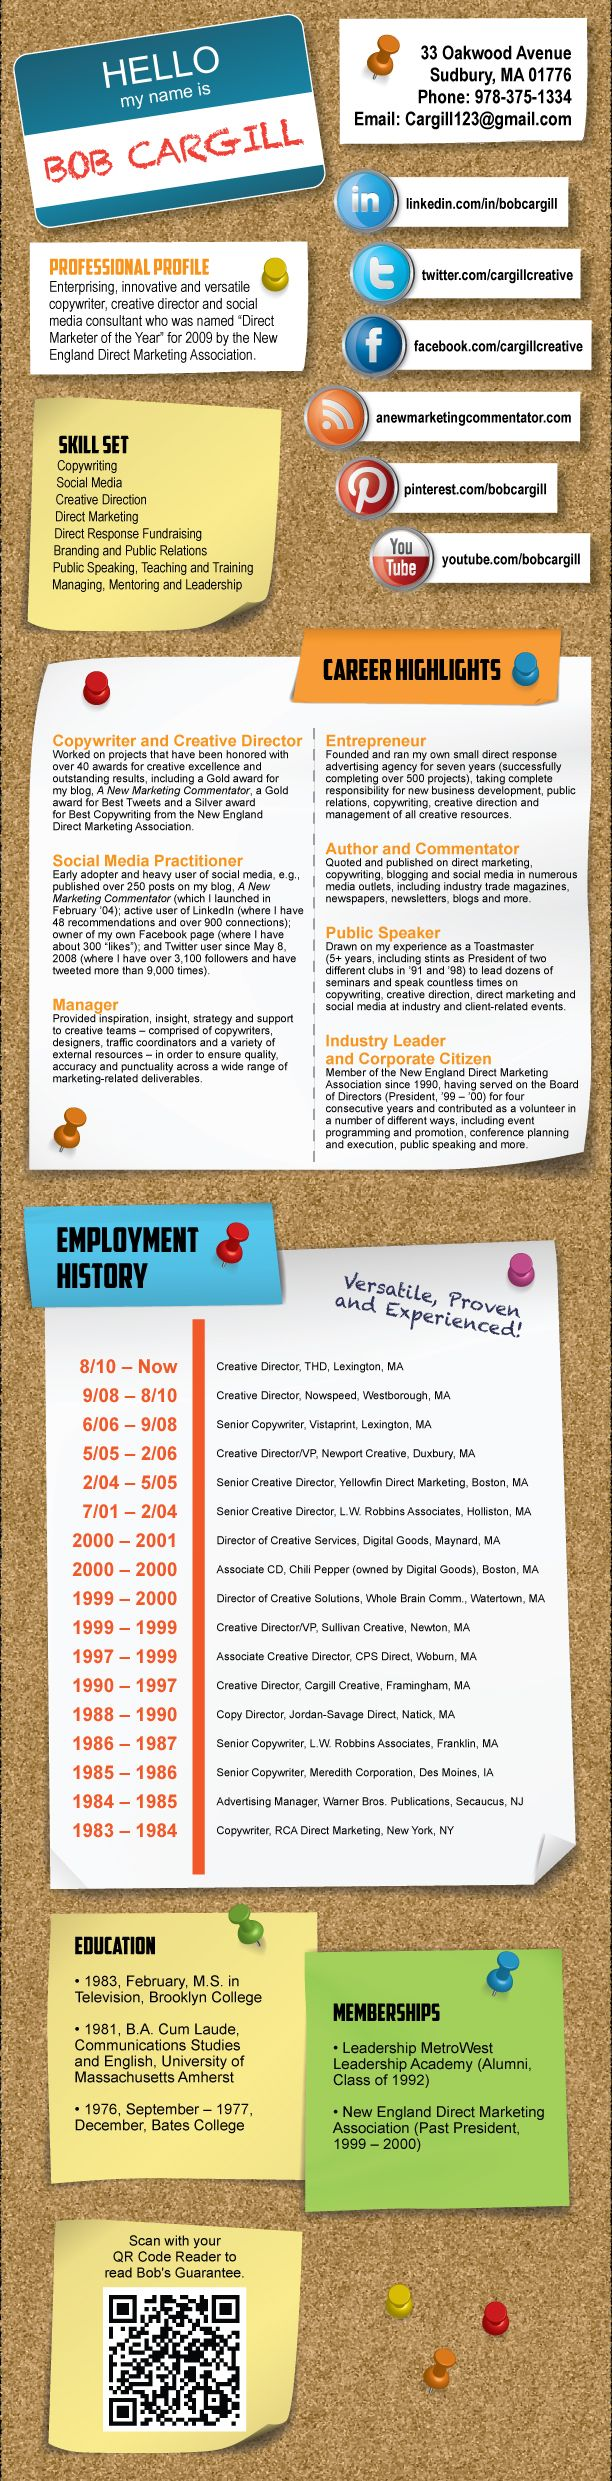 best images about cv posts creative and miami a second version of my infographic resume copywriting socialmedia boston